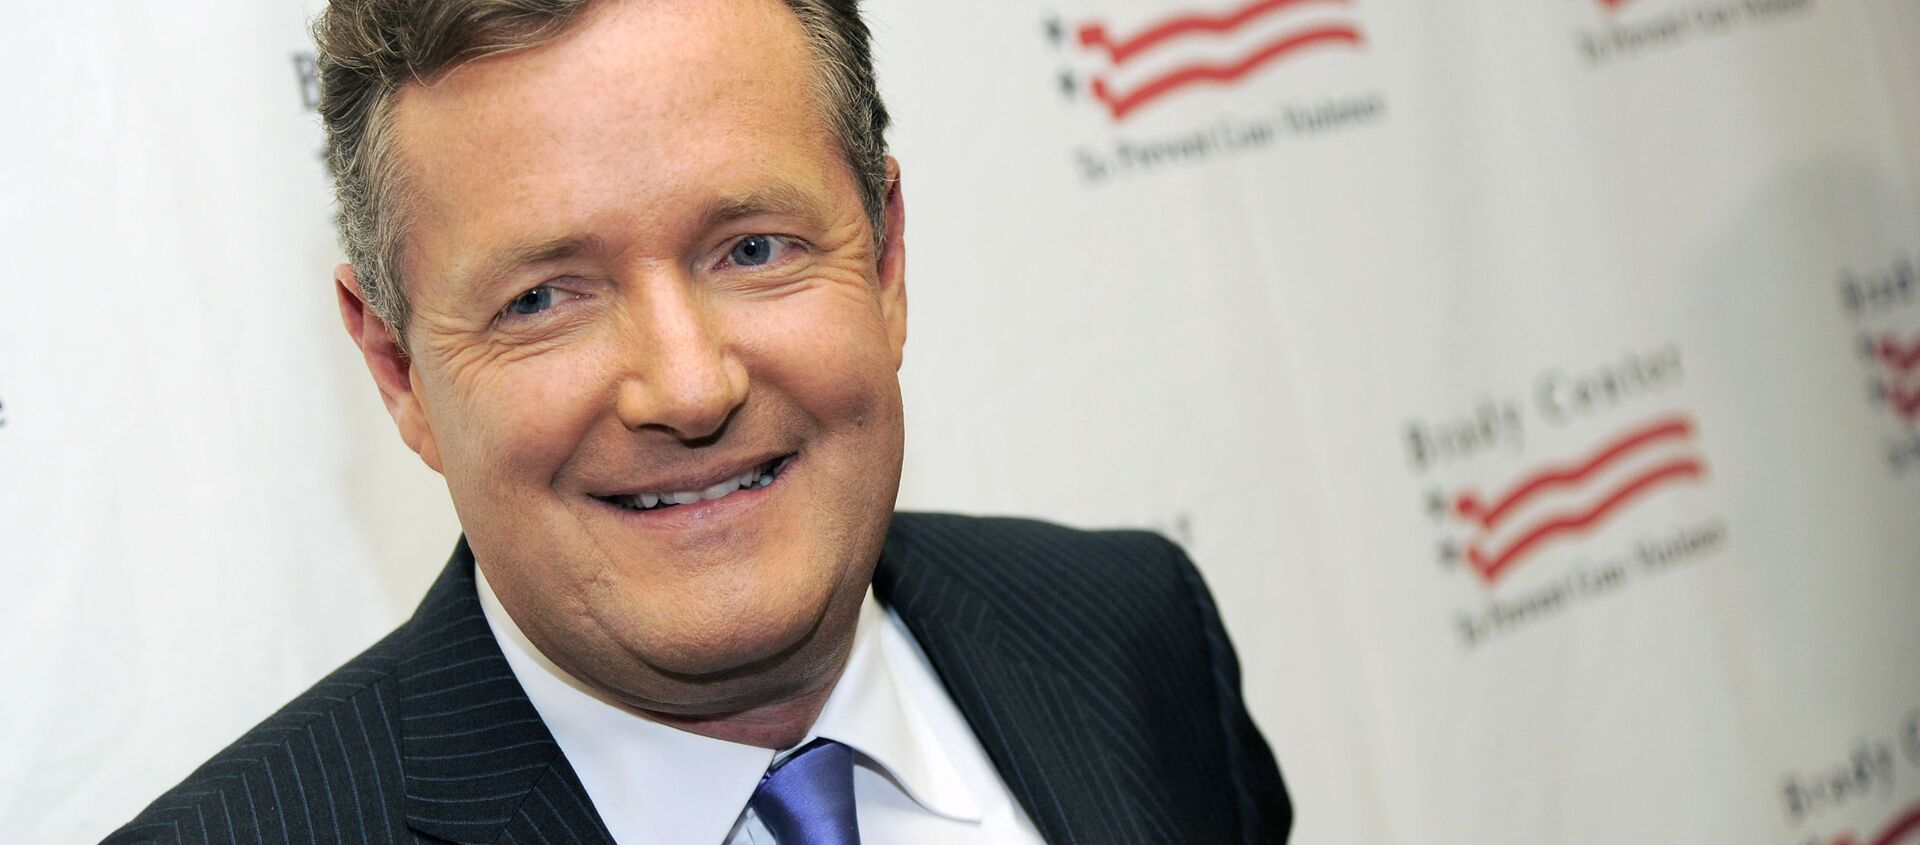 This May 7, 2013 file photo shows Piers Morgan at the Brady Campaign to Prevent Gun Violence Los Angeles Gala in Beverly Hills, Calif. - Sputnik International, 1920, 22.05.2021